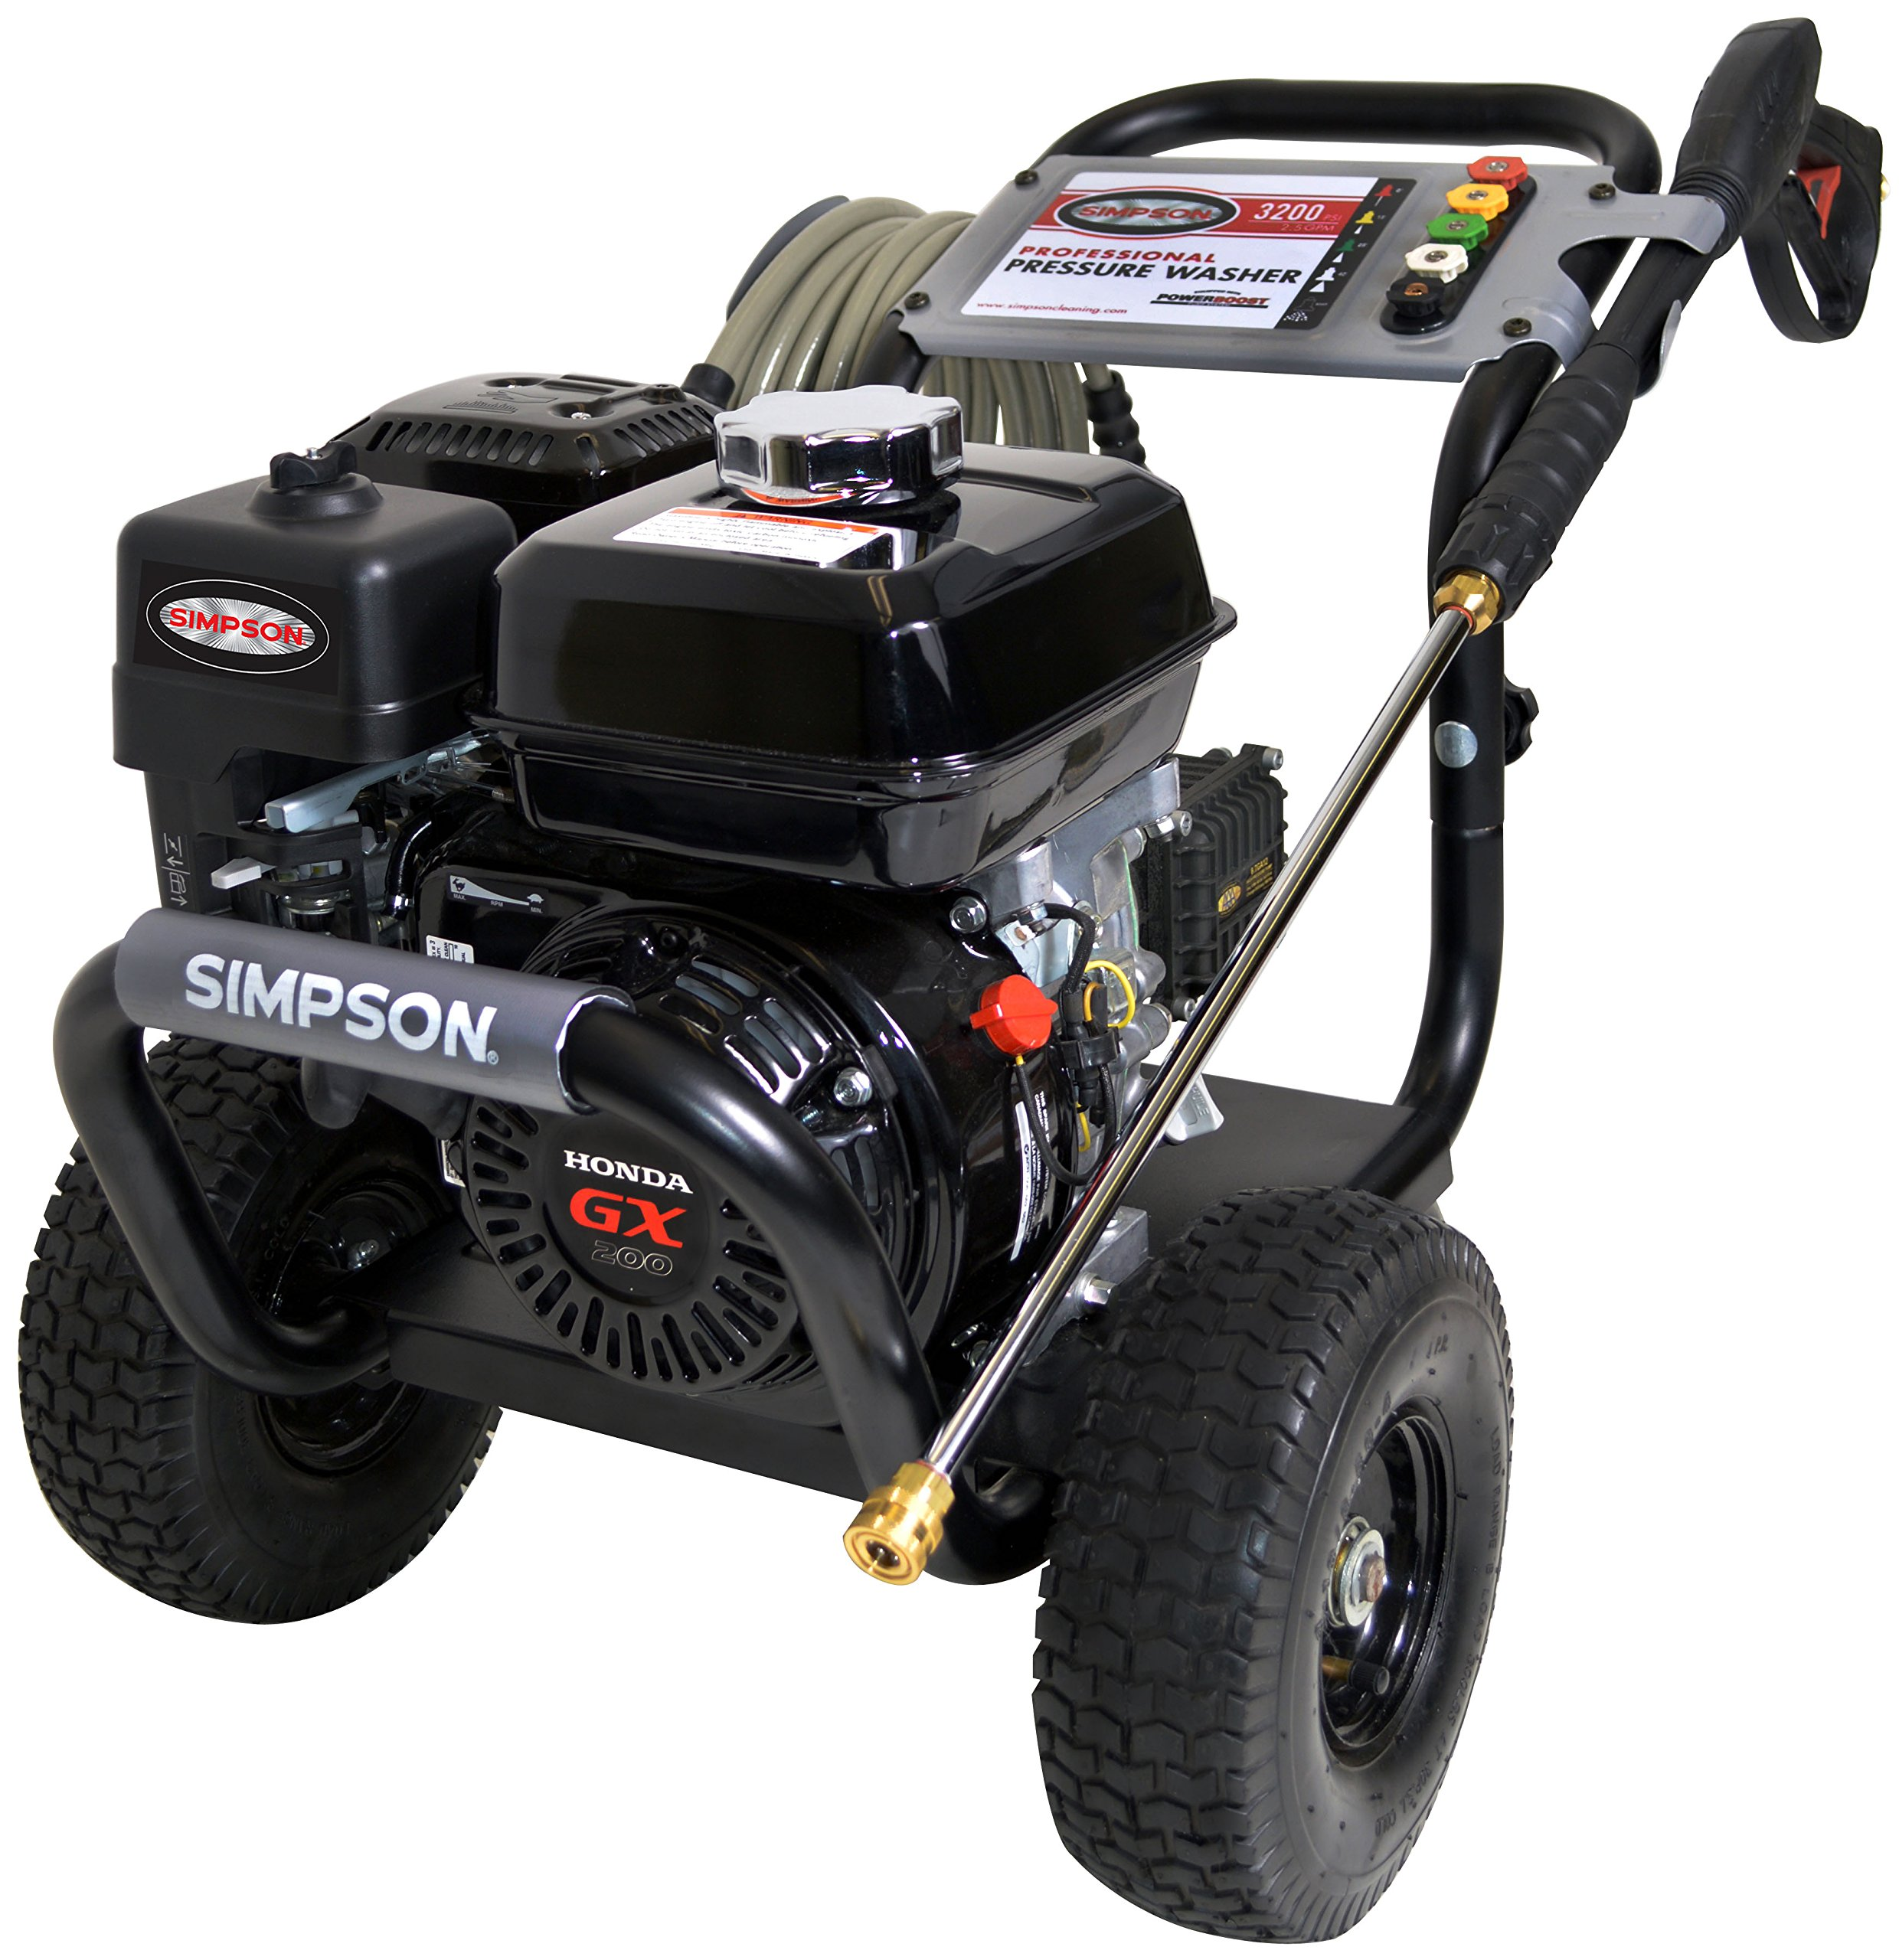 SIMPSON Cleaning PS3228-S 3200 PSI at 2.5 GPM Gas Pressure Washer Powered by HONDA with AAA Triplex Pump